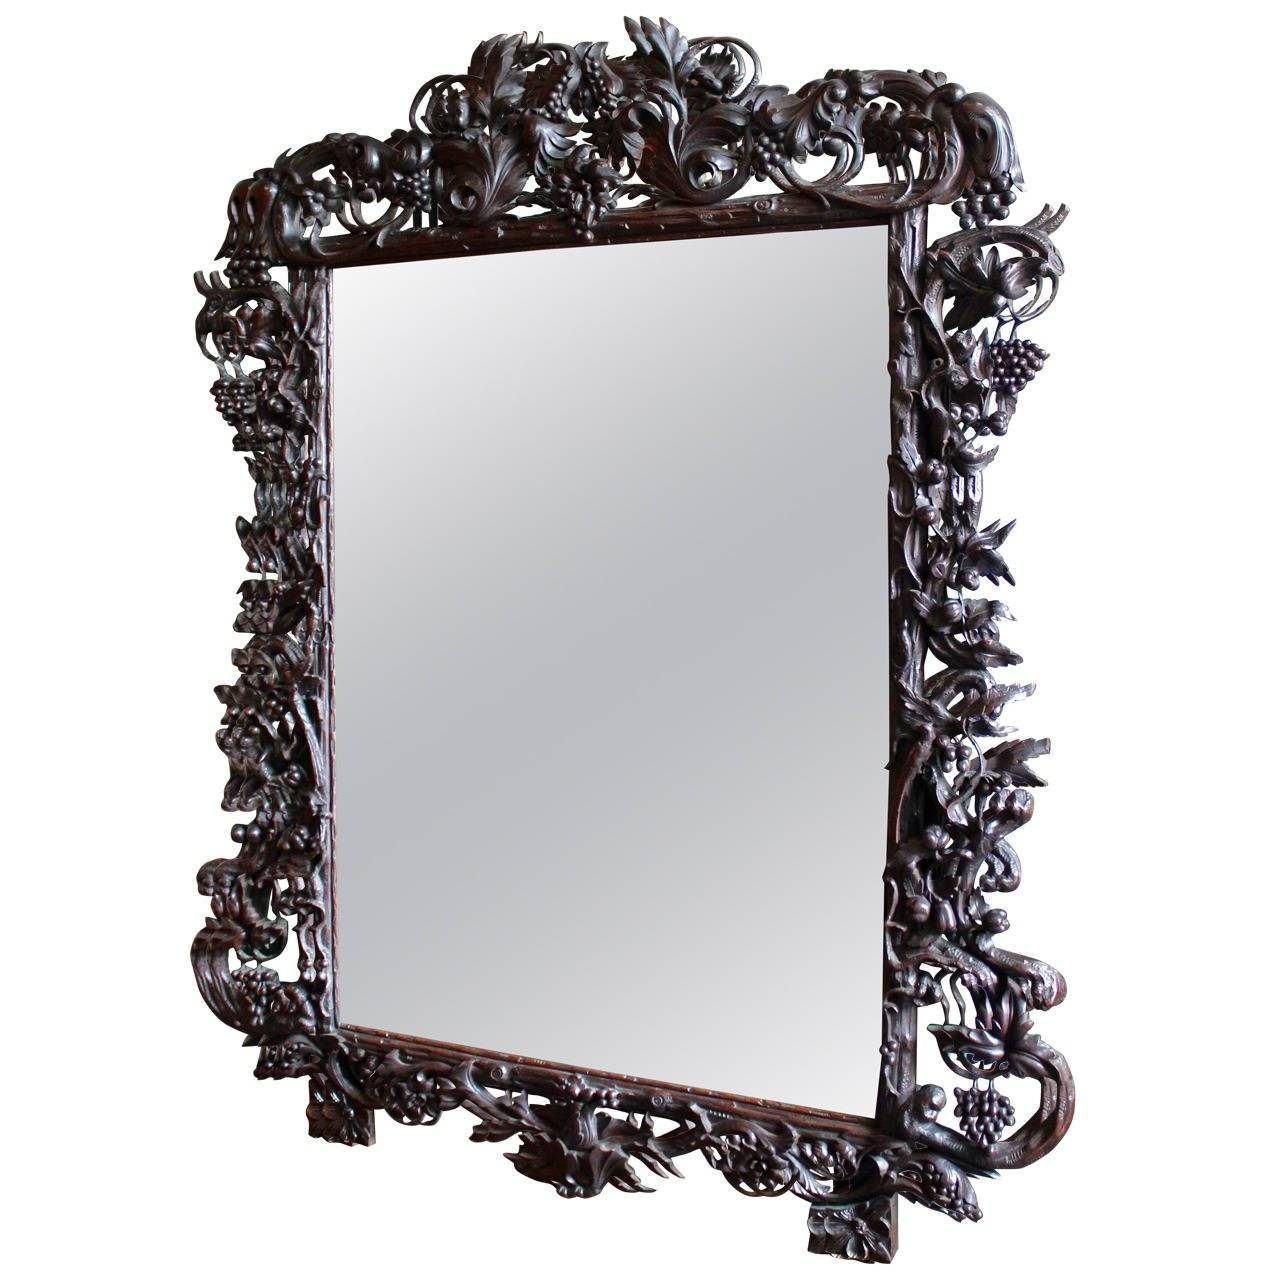 Late 19Th Century Ornate Large Black Forest French Mirror At 1Stdibs Within Large Ornate Mirrors (View 17 of 25)